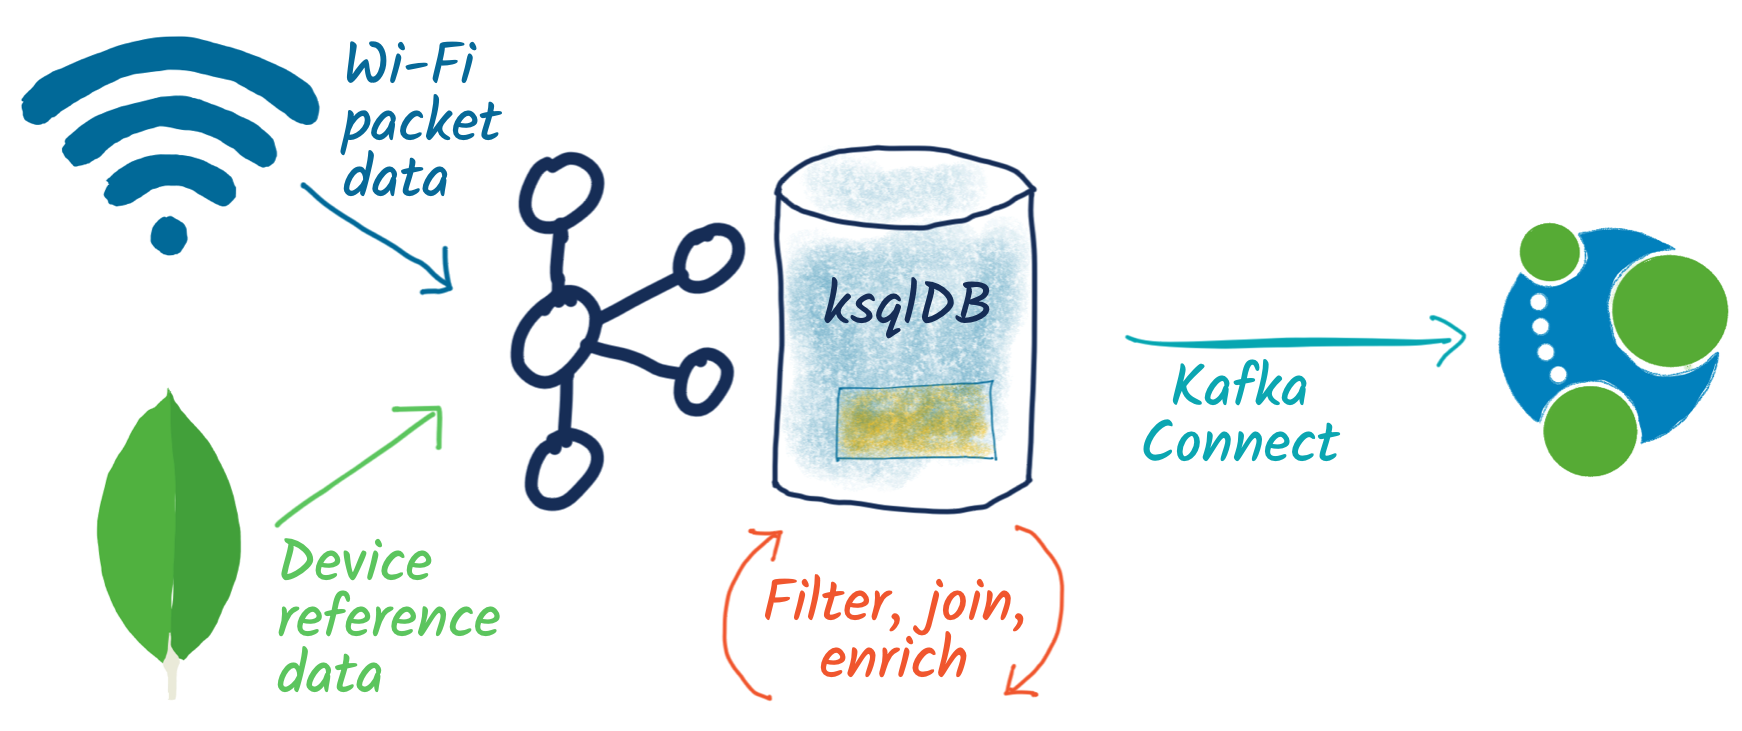 Wi-Fi packet data | Device reference data ➝ Kafka | ksqlDB ➝ Kafka Connect ➝ Neo4j